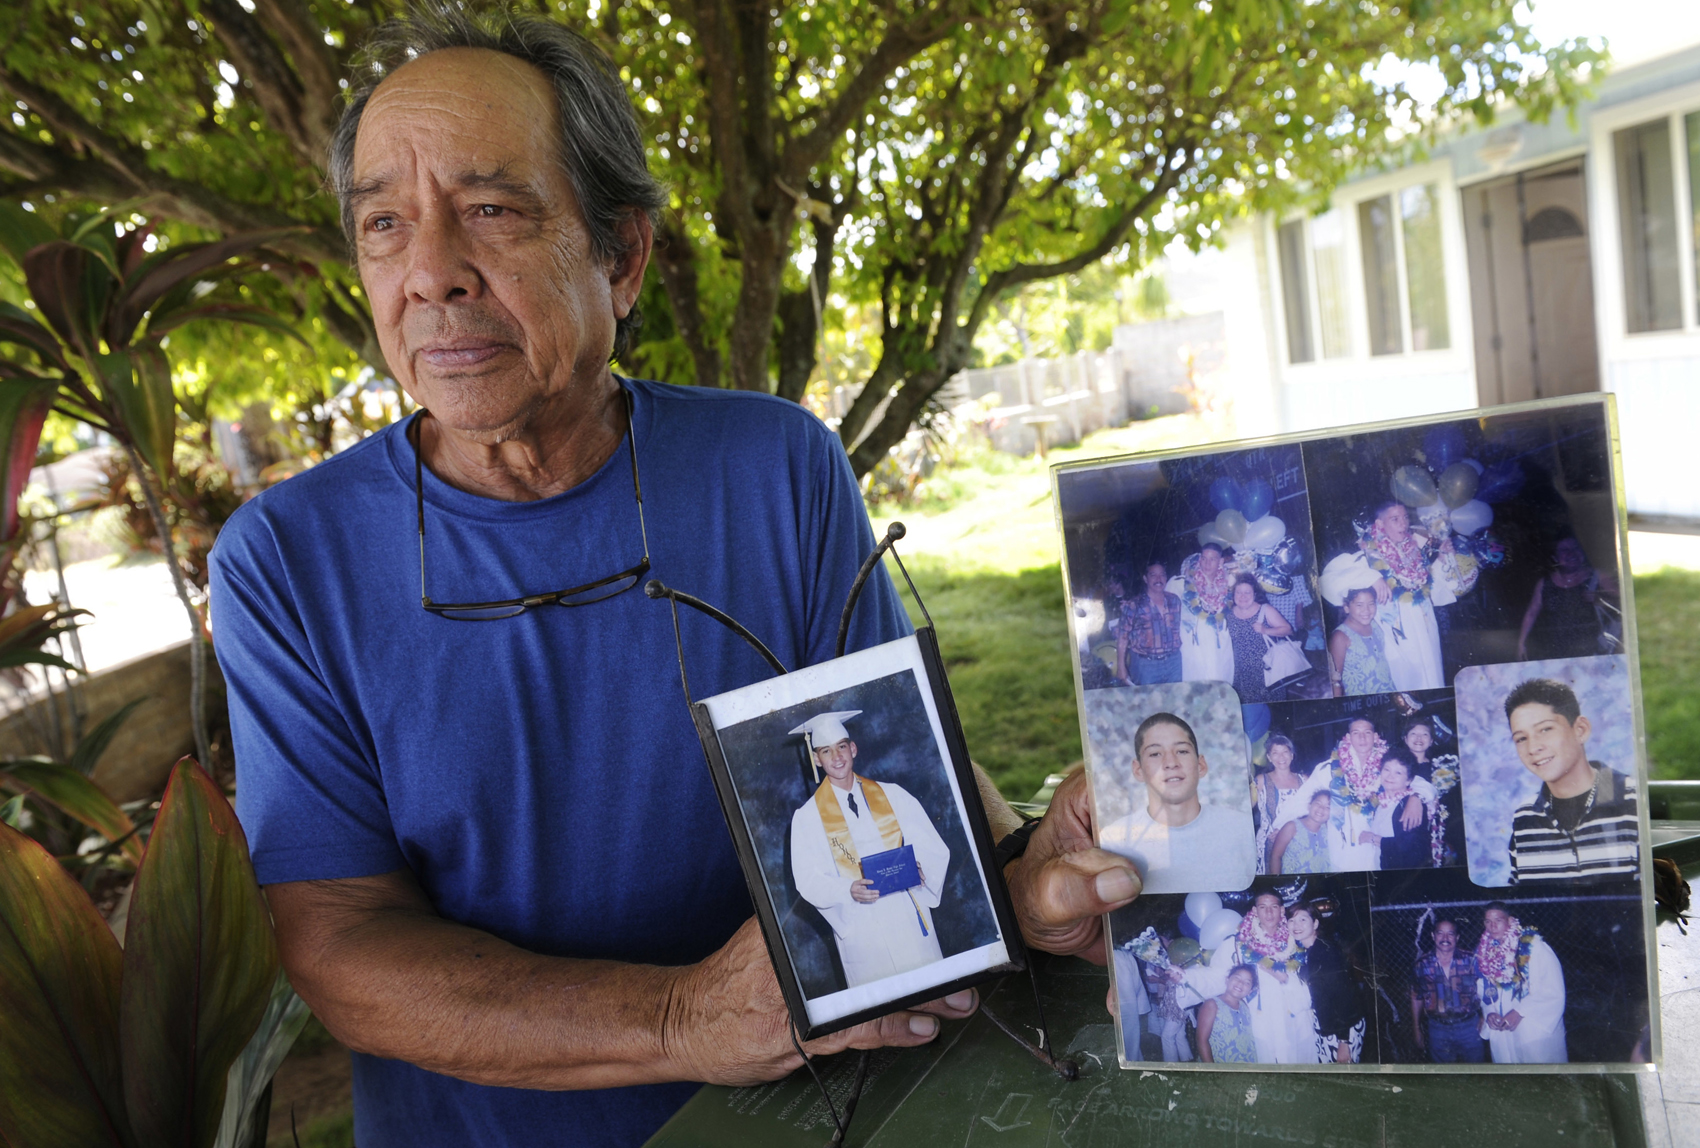 In this July 10, 2017, photo, Clifford Kang, father of soldier Ikaika E. Kang, poses with photos of his son in Kailua, Hawaii. (Bruce Asato/The Star-Advertiser via AP)